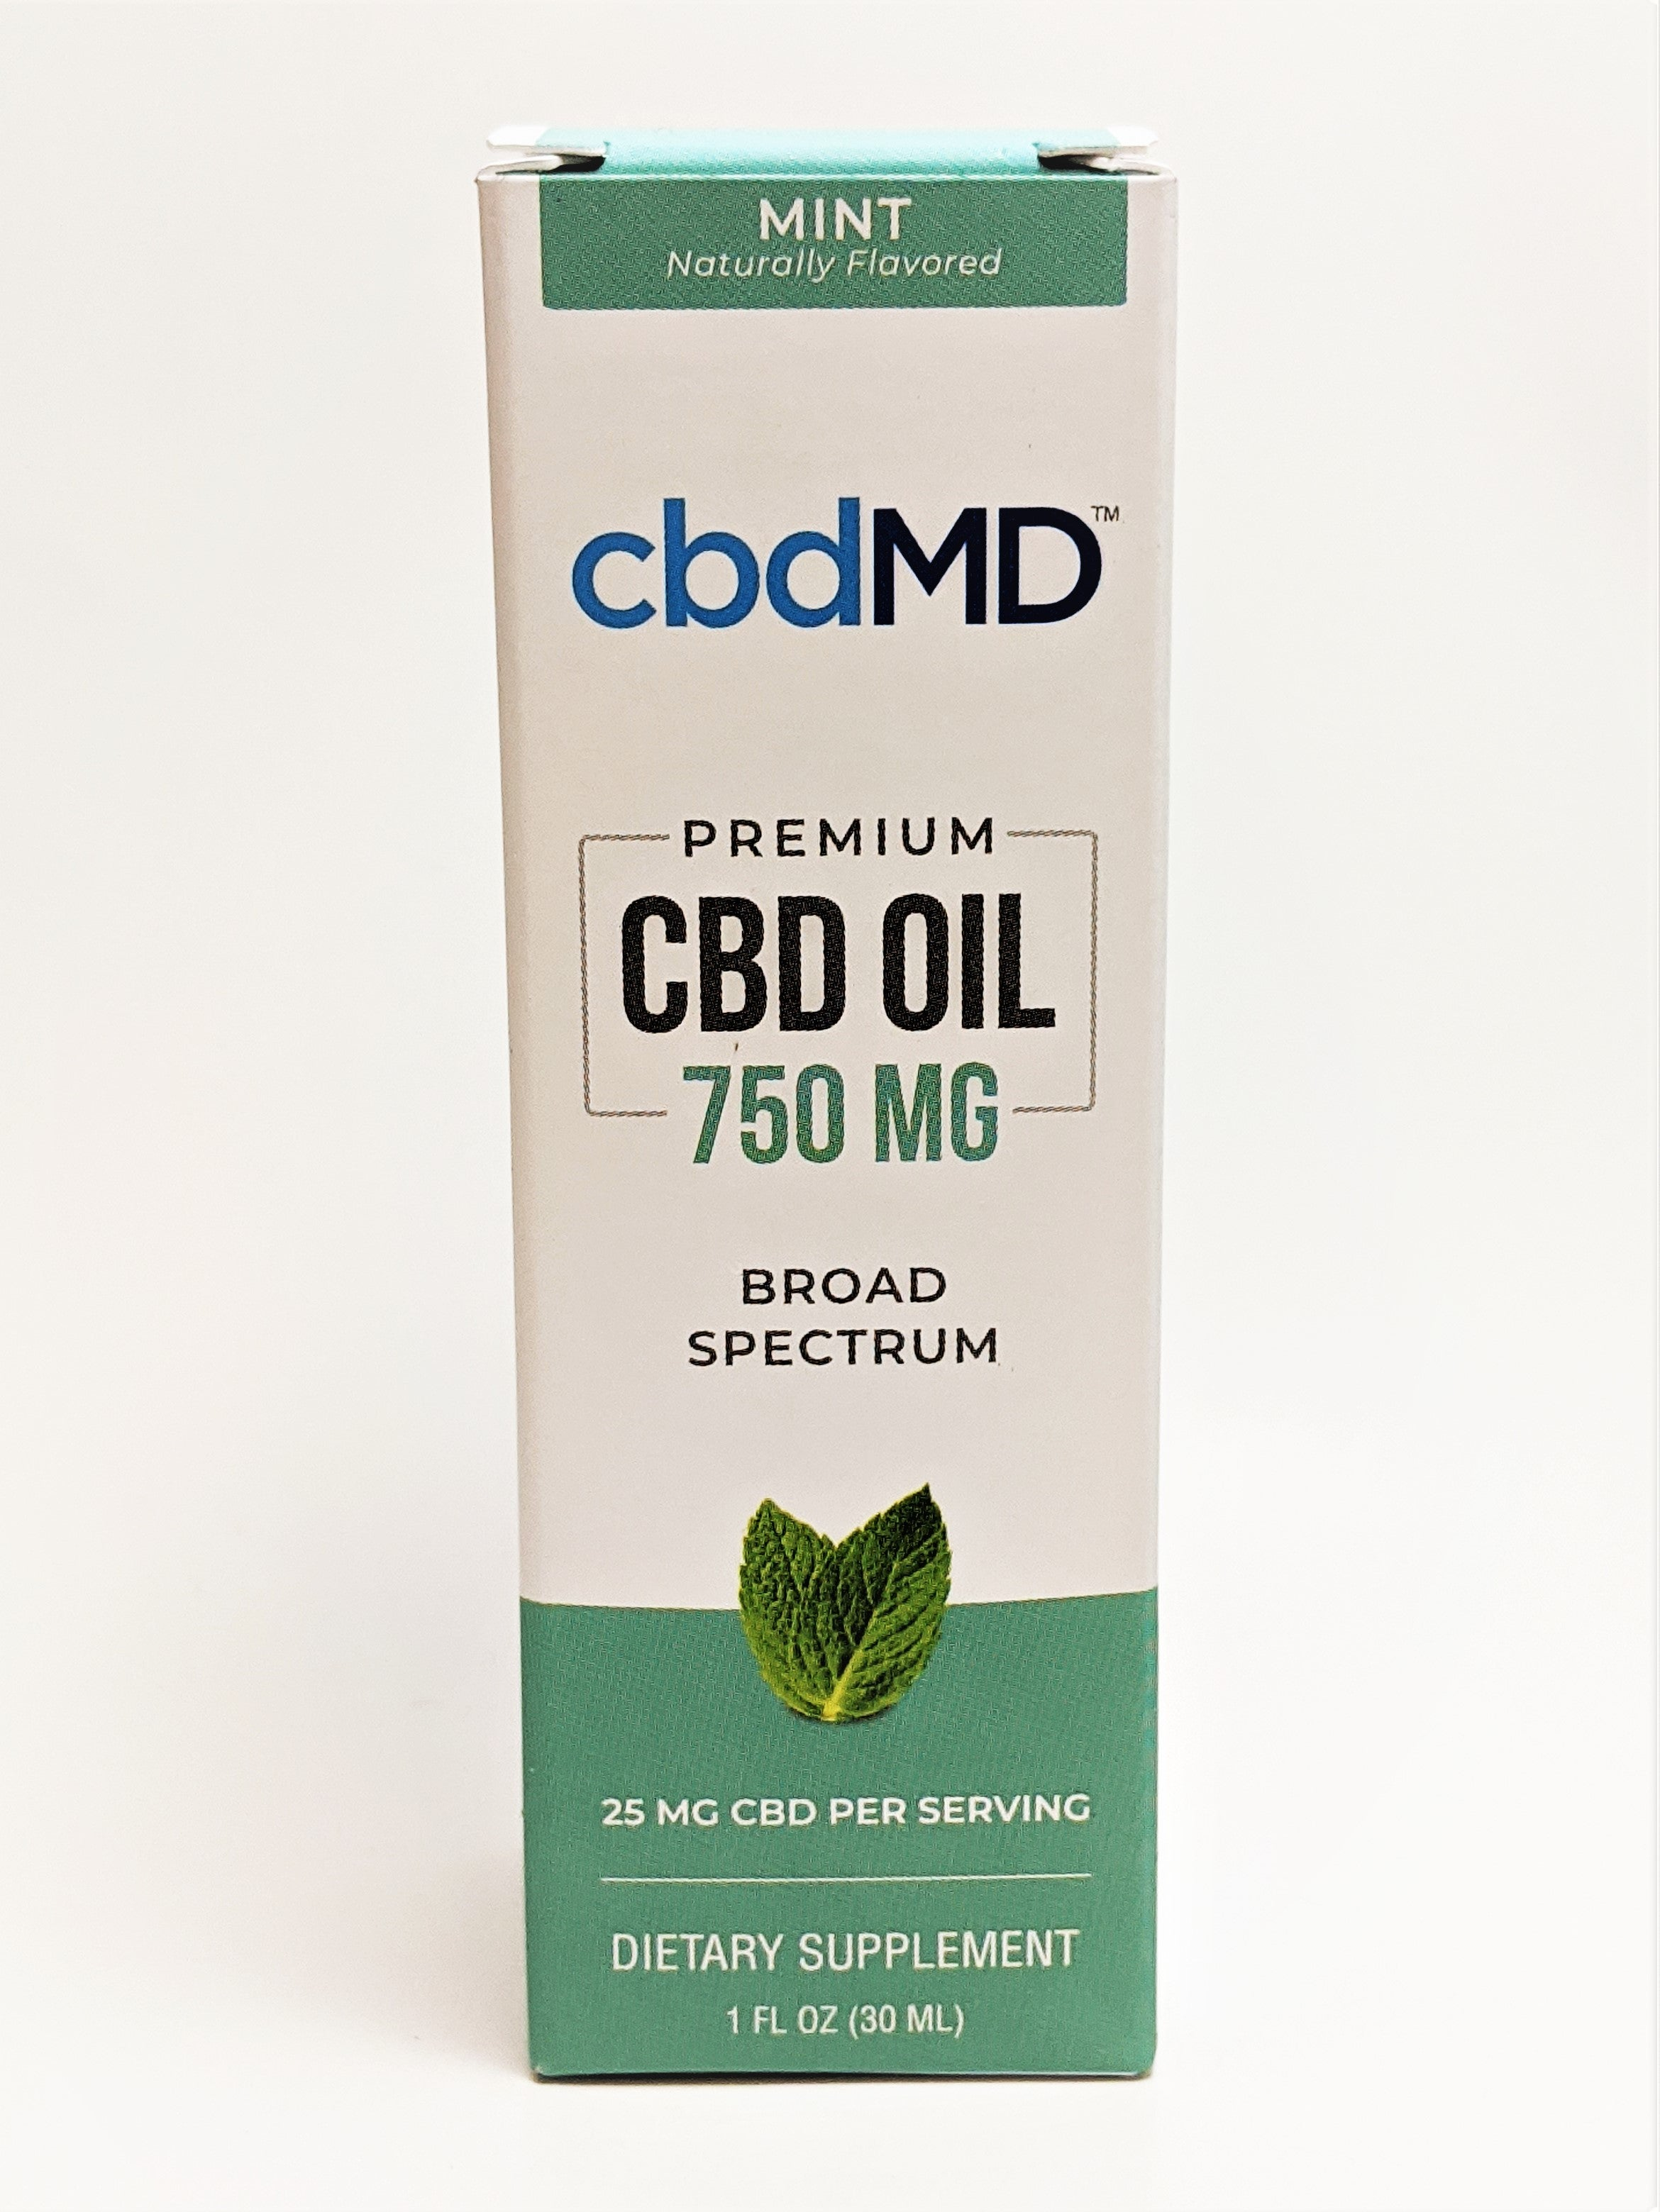 cbdMD 750 mg Oil - Mint Flavor - CBD Central